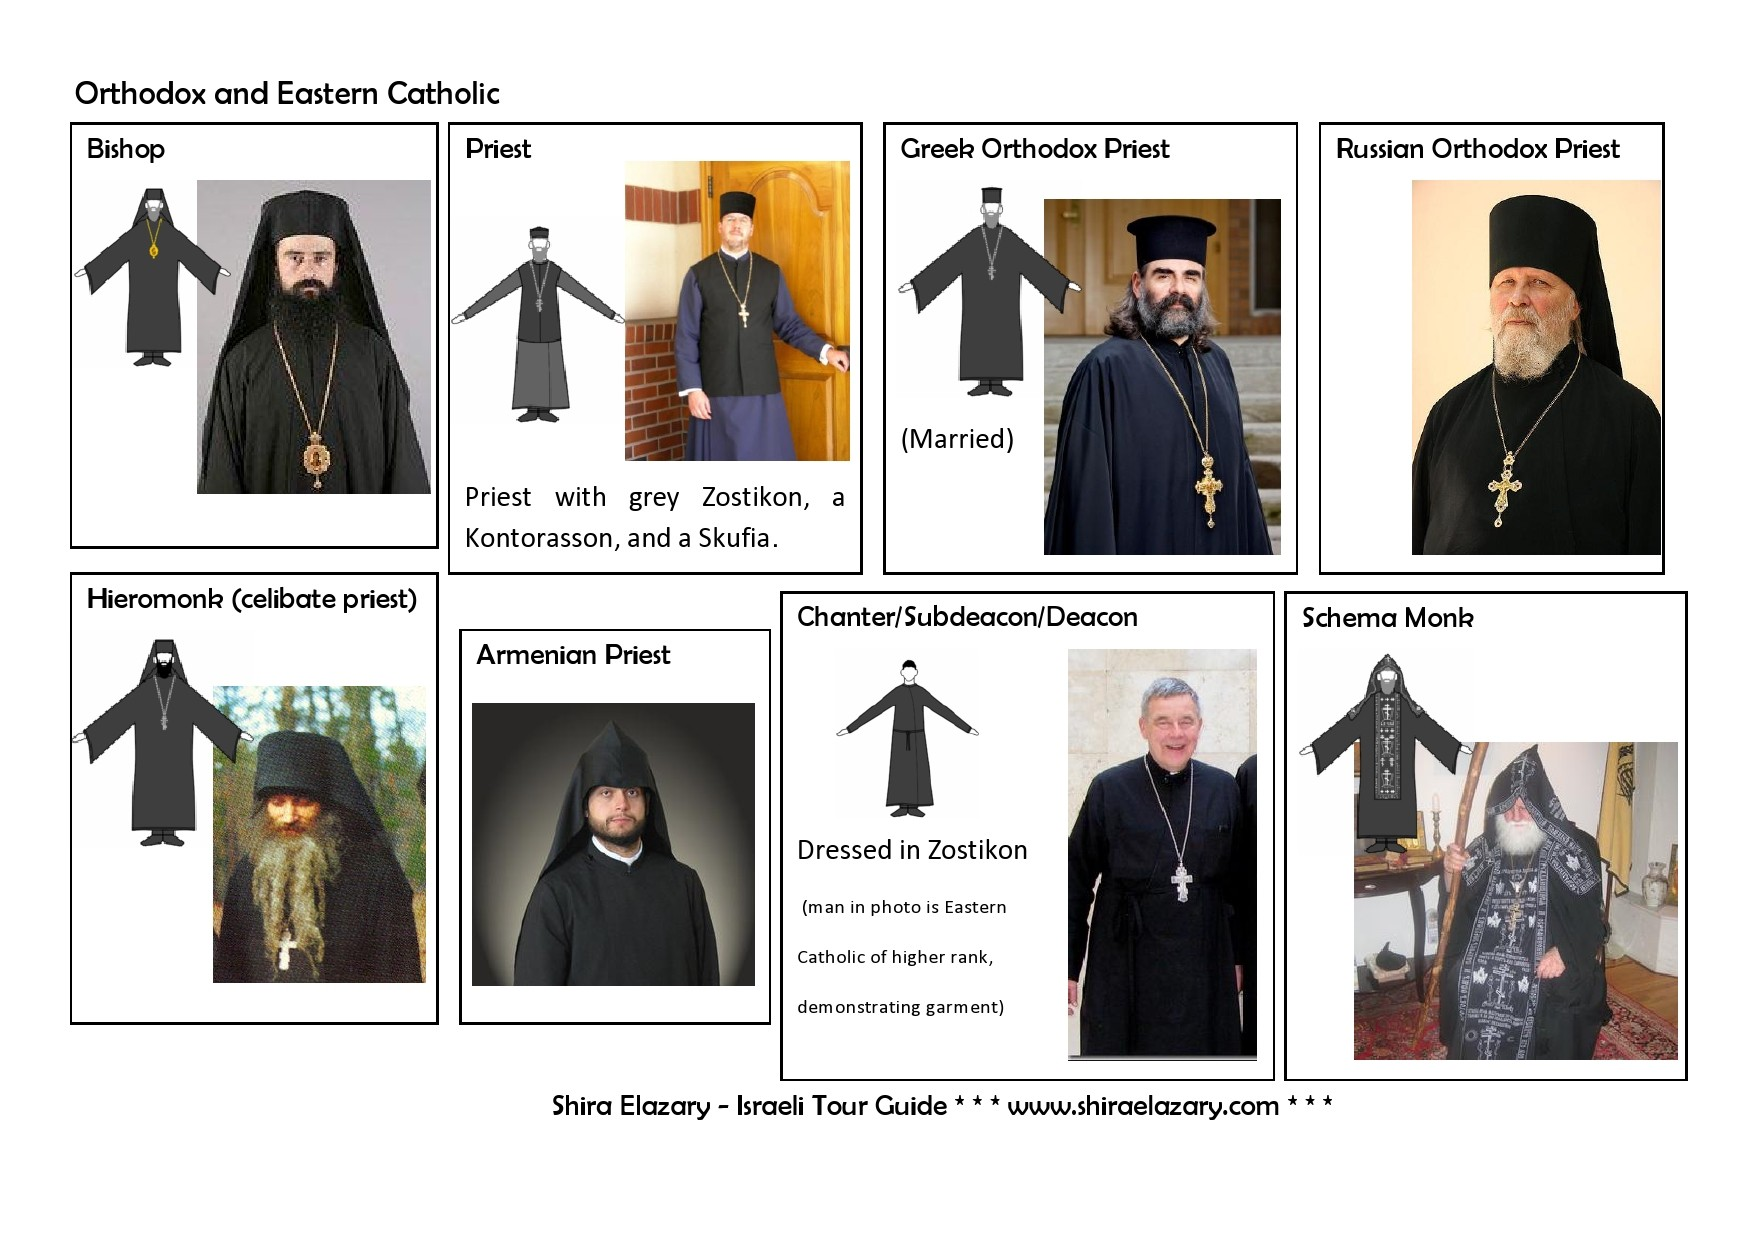 Images of priests and monks from different denominations, demonstrating their typical attire